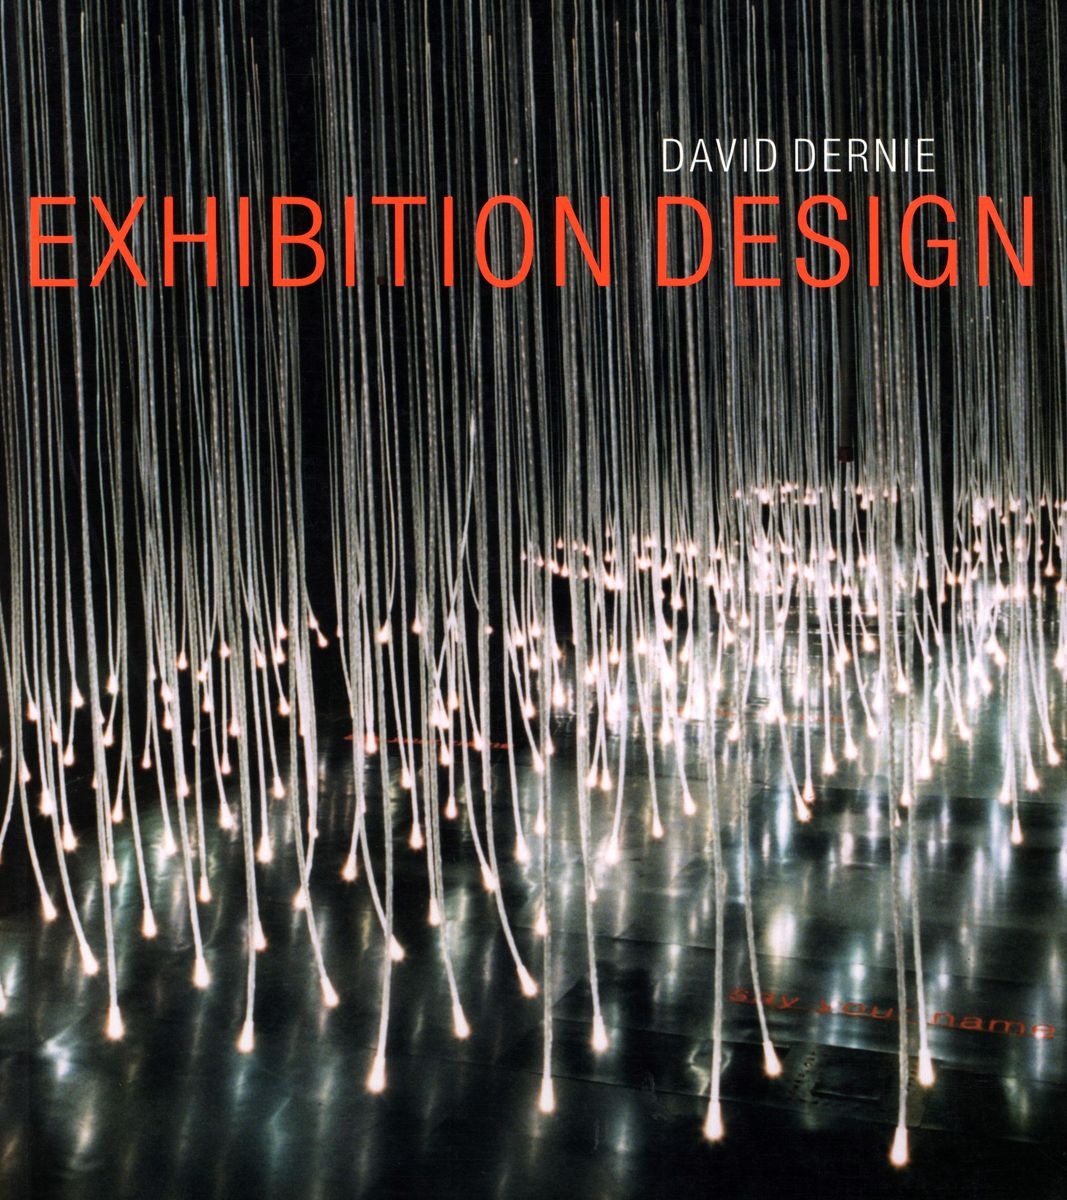 Exhibition Design по 1 158.00 руб от изд. Laurence King